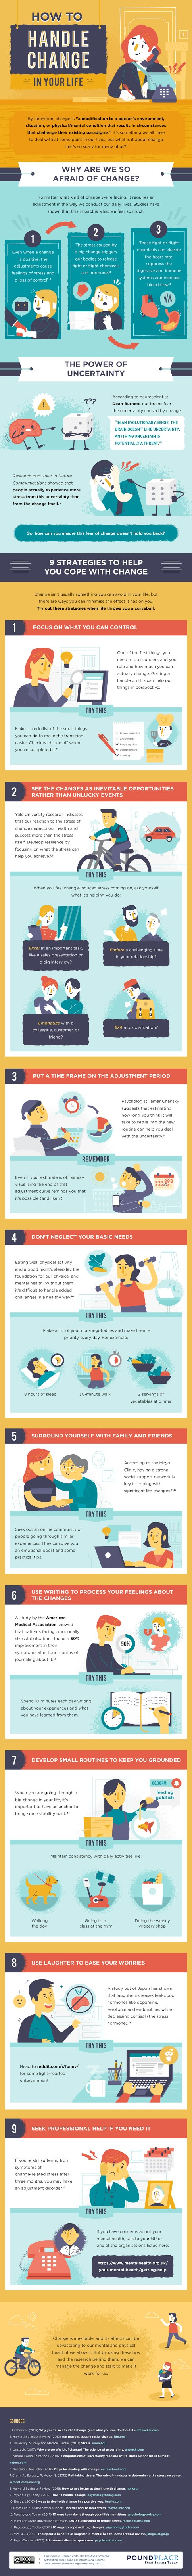 How To Handle Change In Your Life #infographic